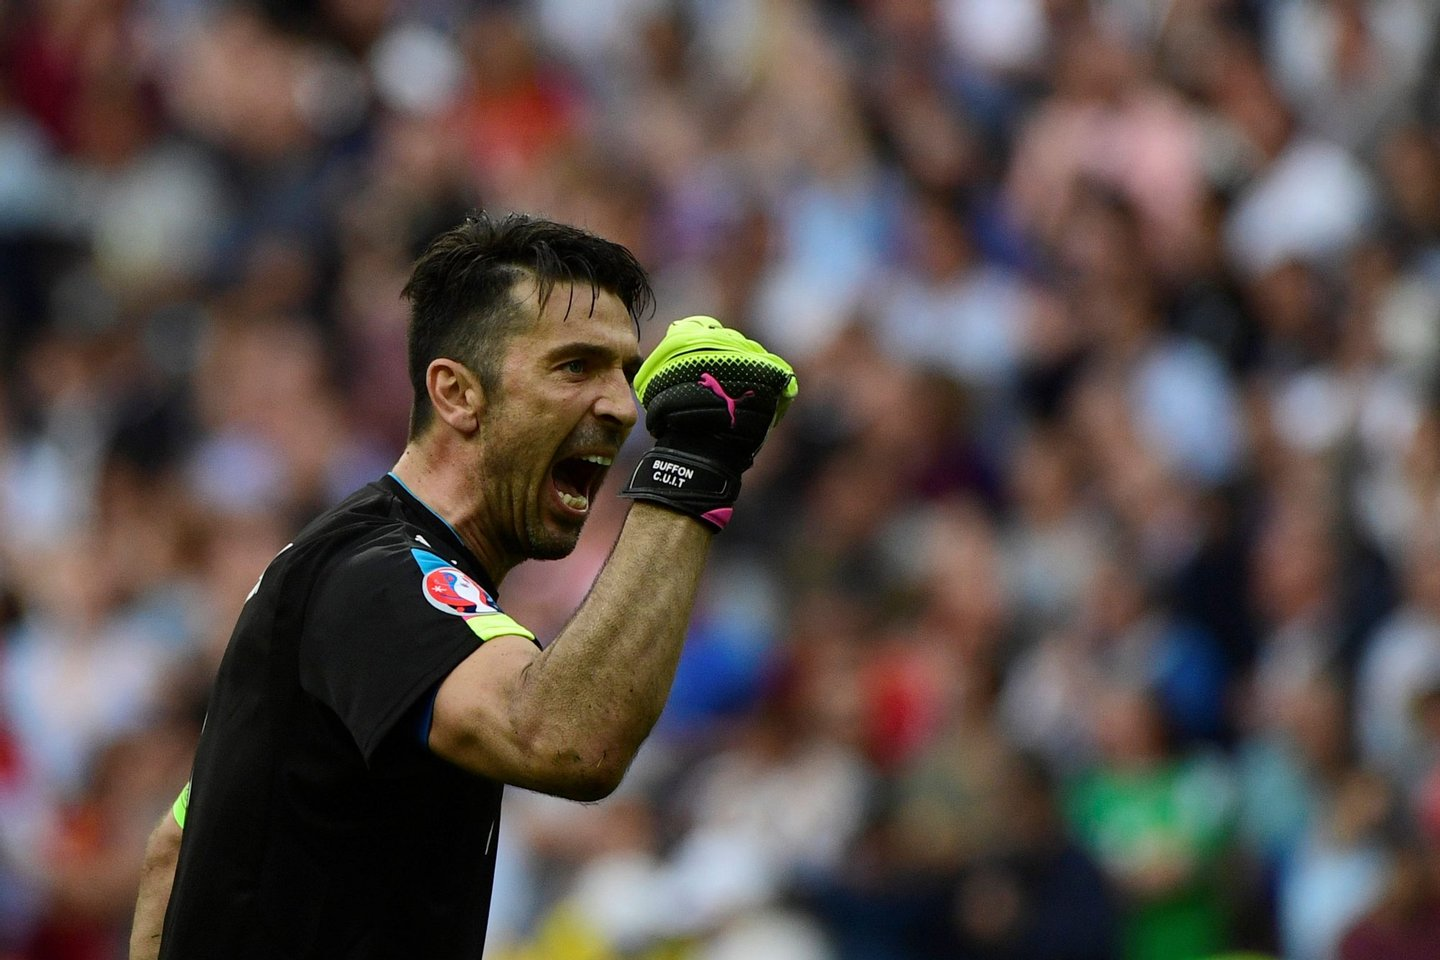 Italy's goalkeeper Gianluigi Buffon celebrates his team's win after the Euro 2016 round of 16 football match between Italy and Spain at the Stade de France stadium in Saint-Denis, near Paris, on June 27, 2016. Italy won the match 2:0. / AFP / PIERRE-PHILIPPE MARCOU (Photo credit should read PIERRE-PHILIPPE MARCOU/AFP/Getty Images)